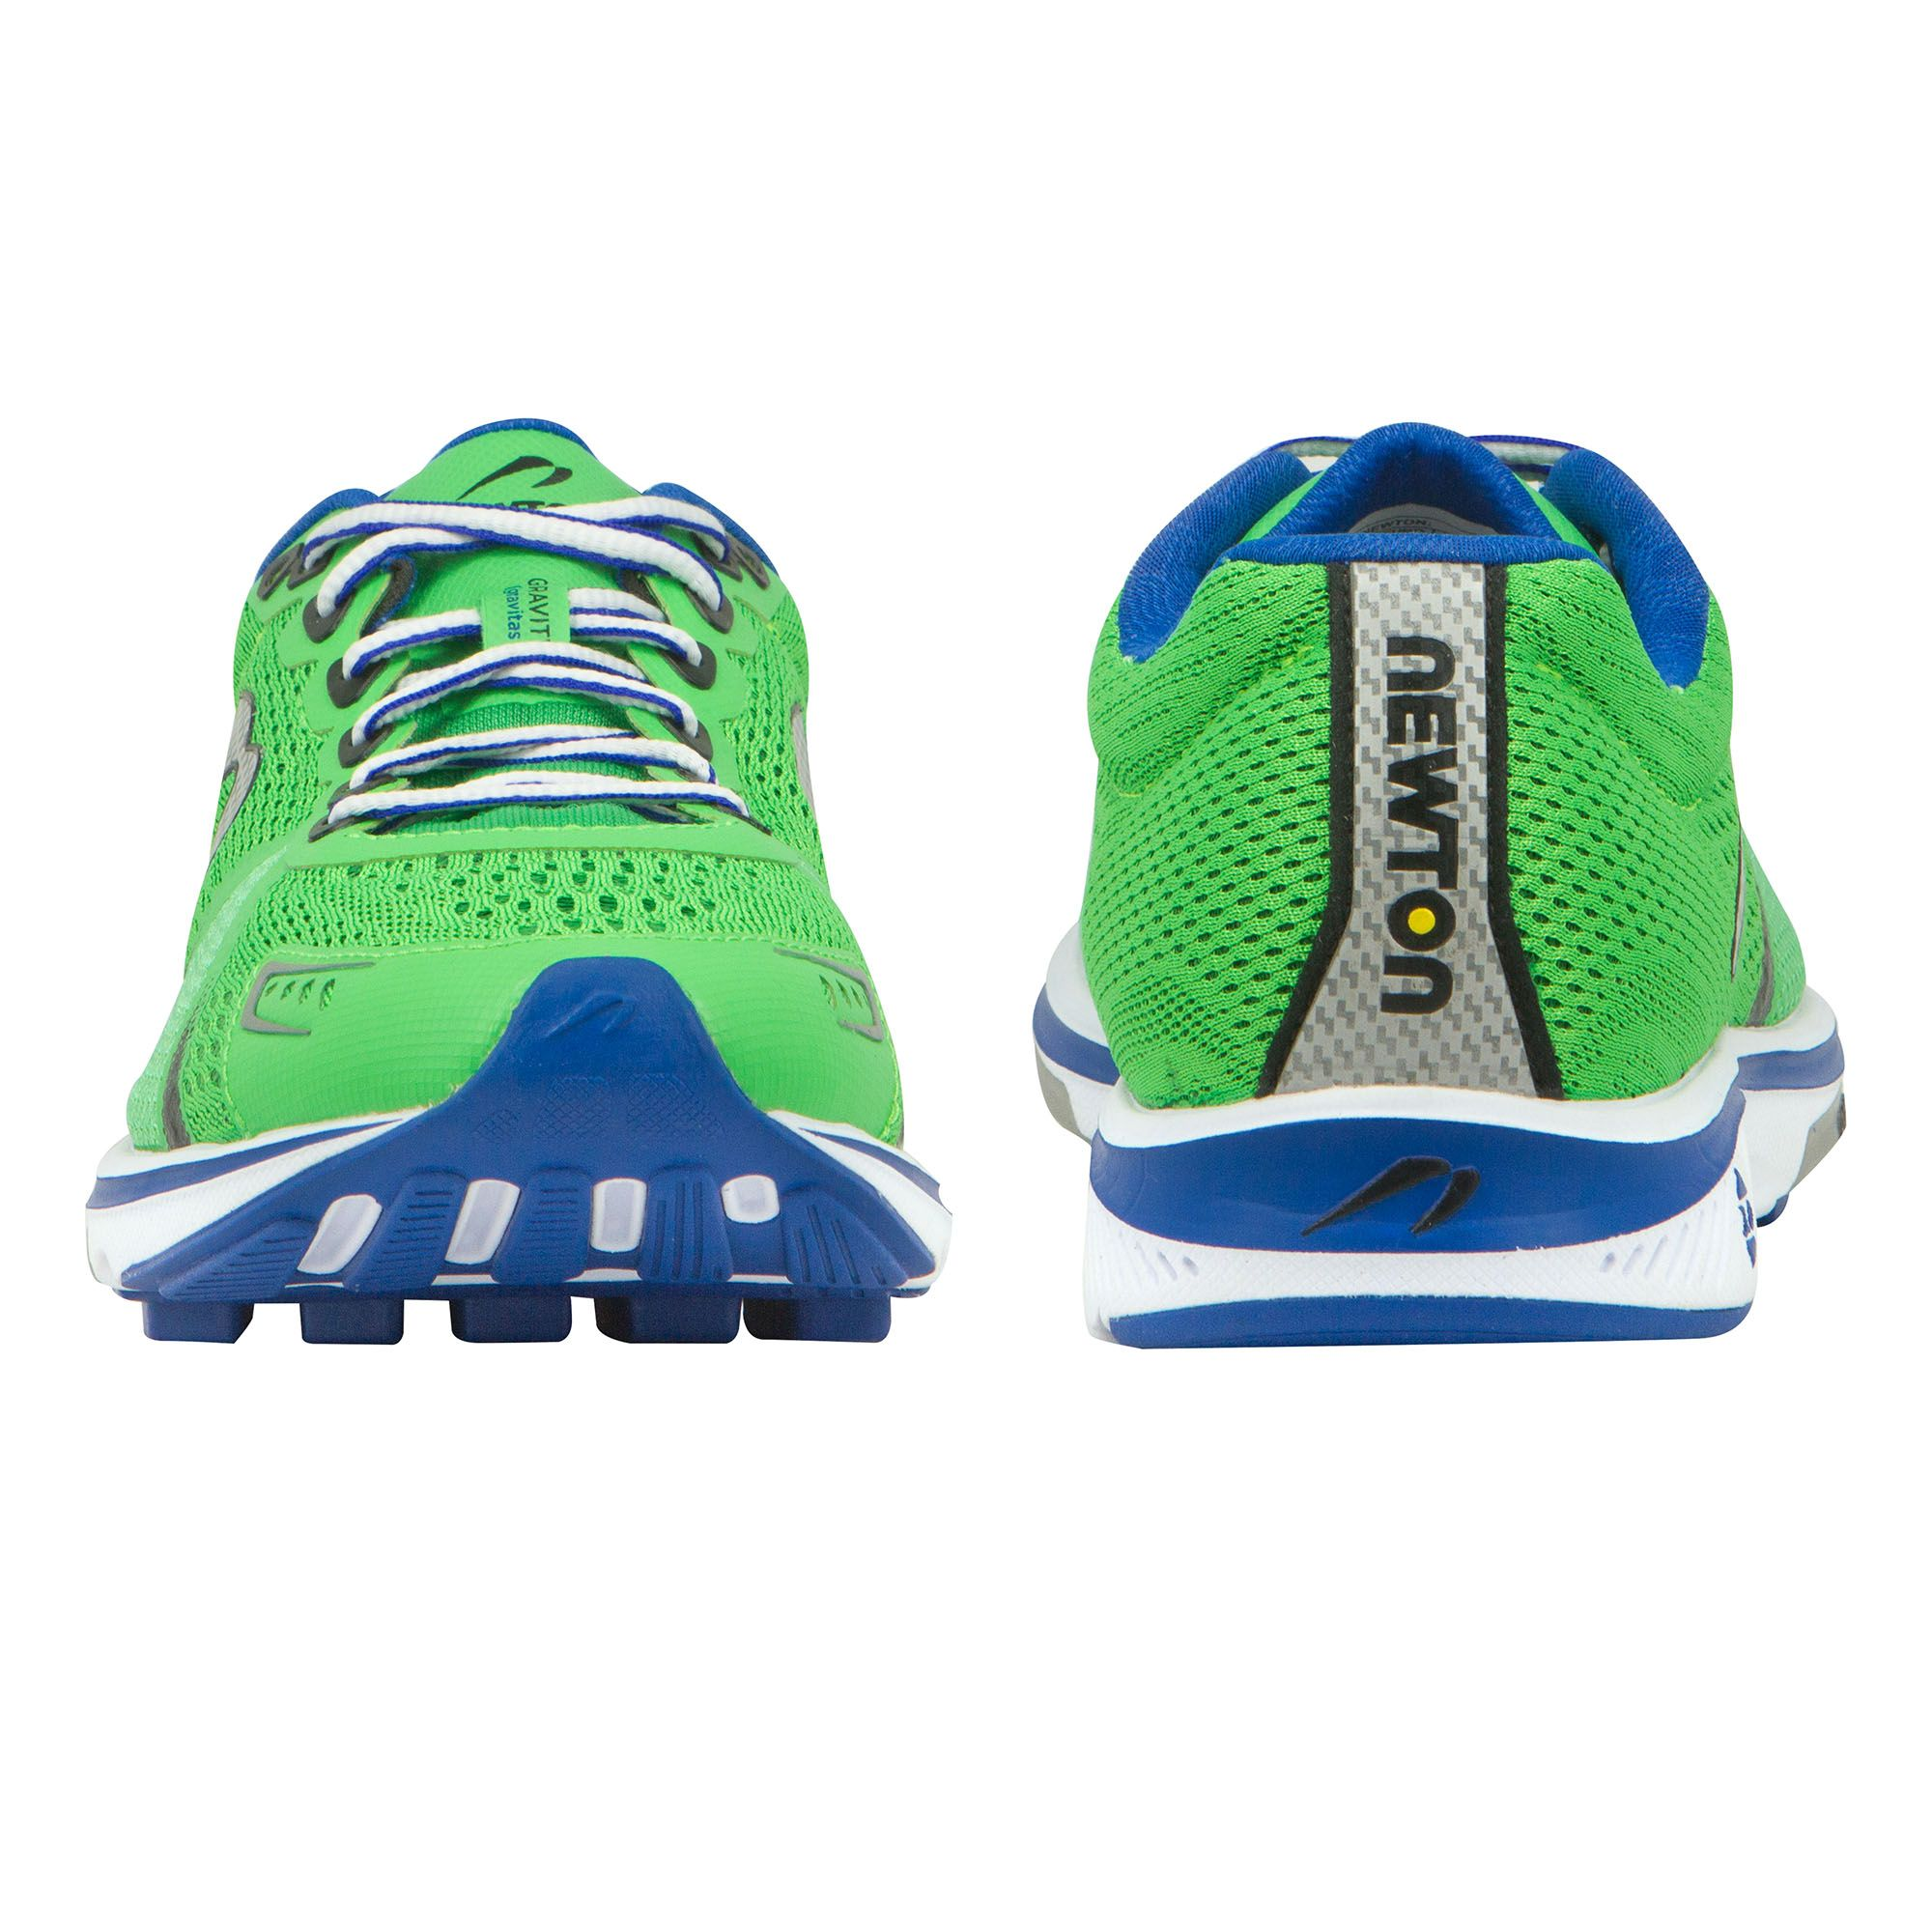 Newton Running Shoes Size